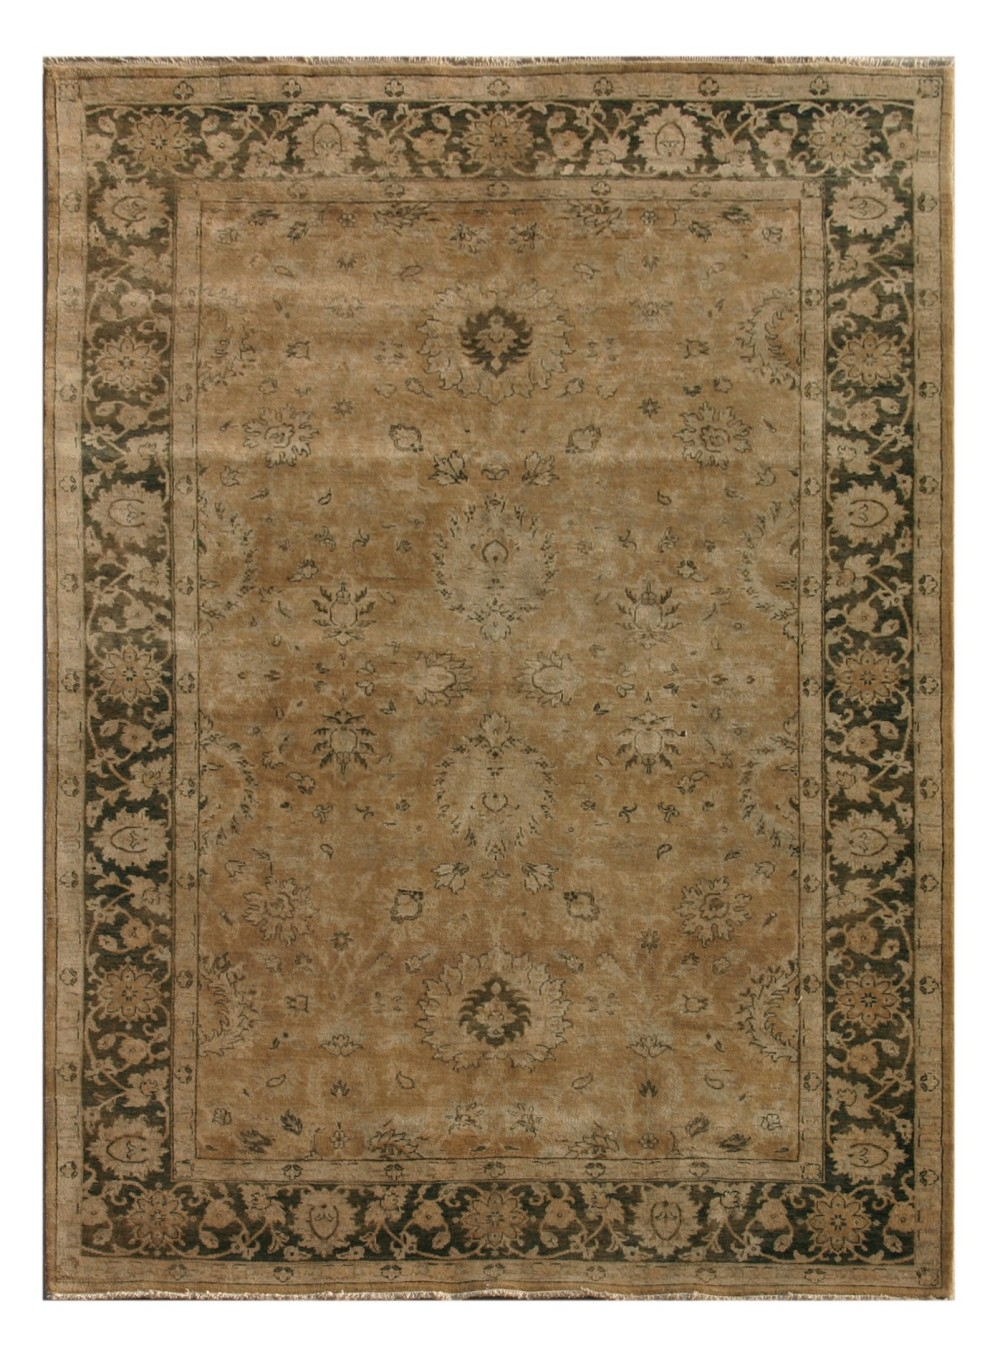 Persian rugs India, buy carpet online, Vintage yarn dyed rug, Indian rugs, Unique rugs India, 6X9 rug india, wool rugs, persian rug india, designer rug india, antique looking rug, light color rugs india, gold rug india, buy rugs india,